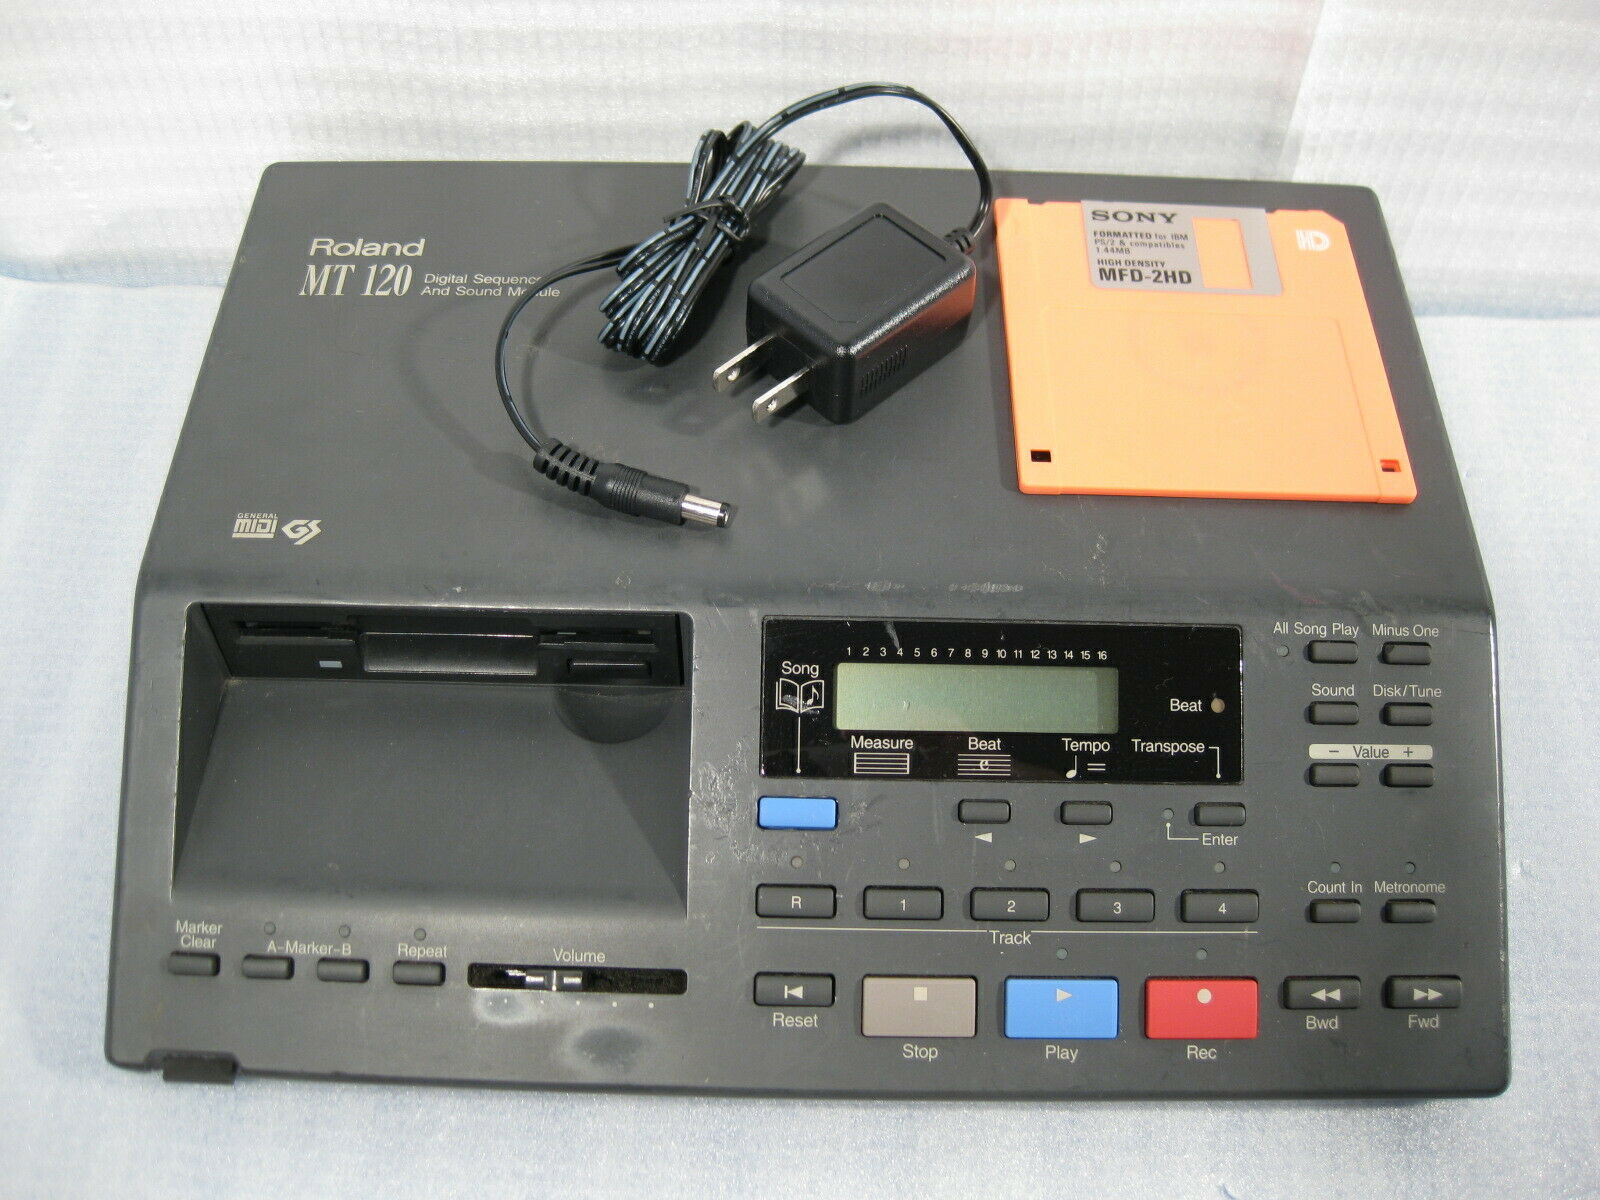 Roland MT-120 Digital Sequencer MIDI Sound Module GS GM Used   Free Shipping